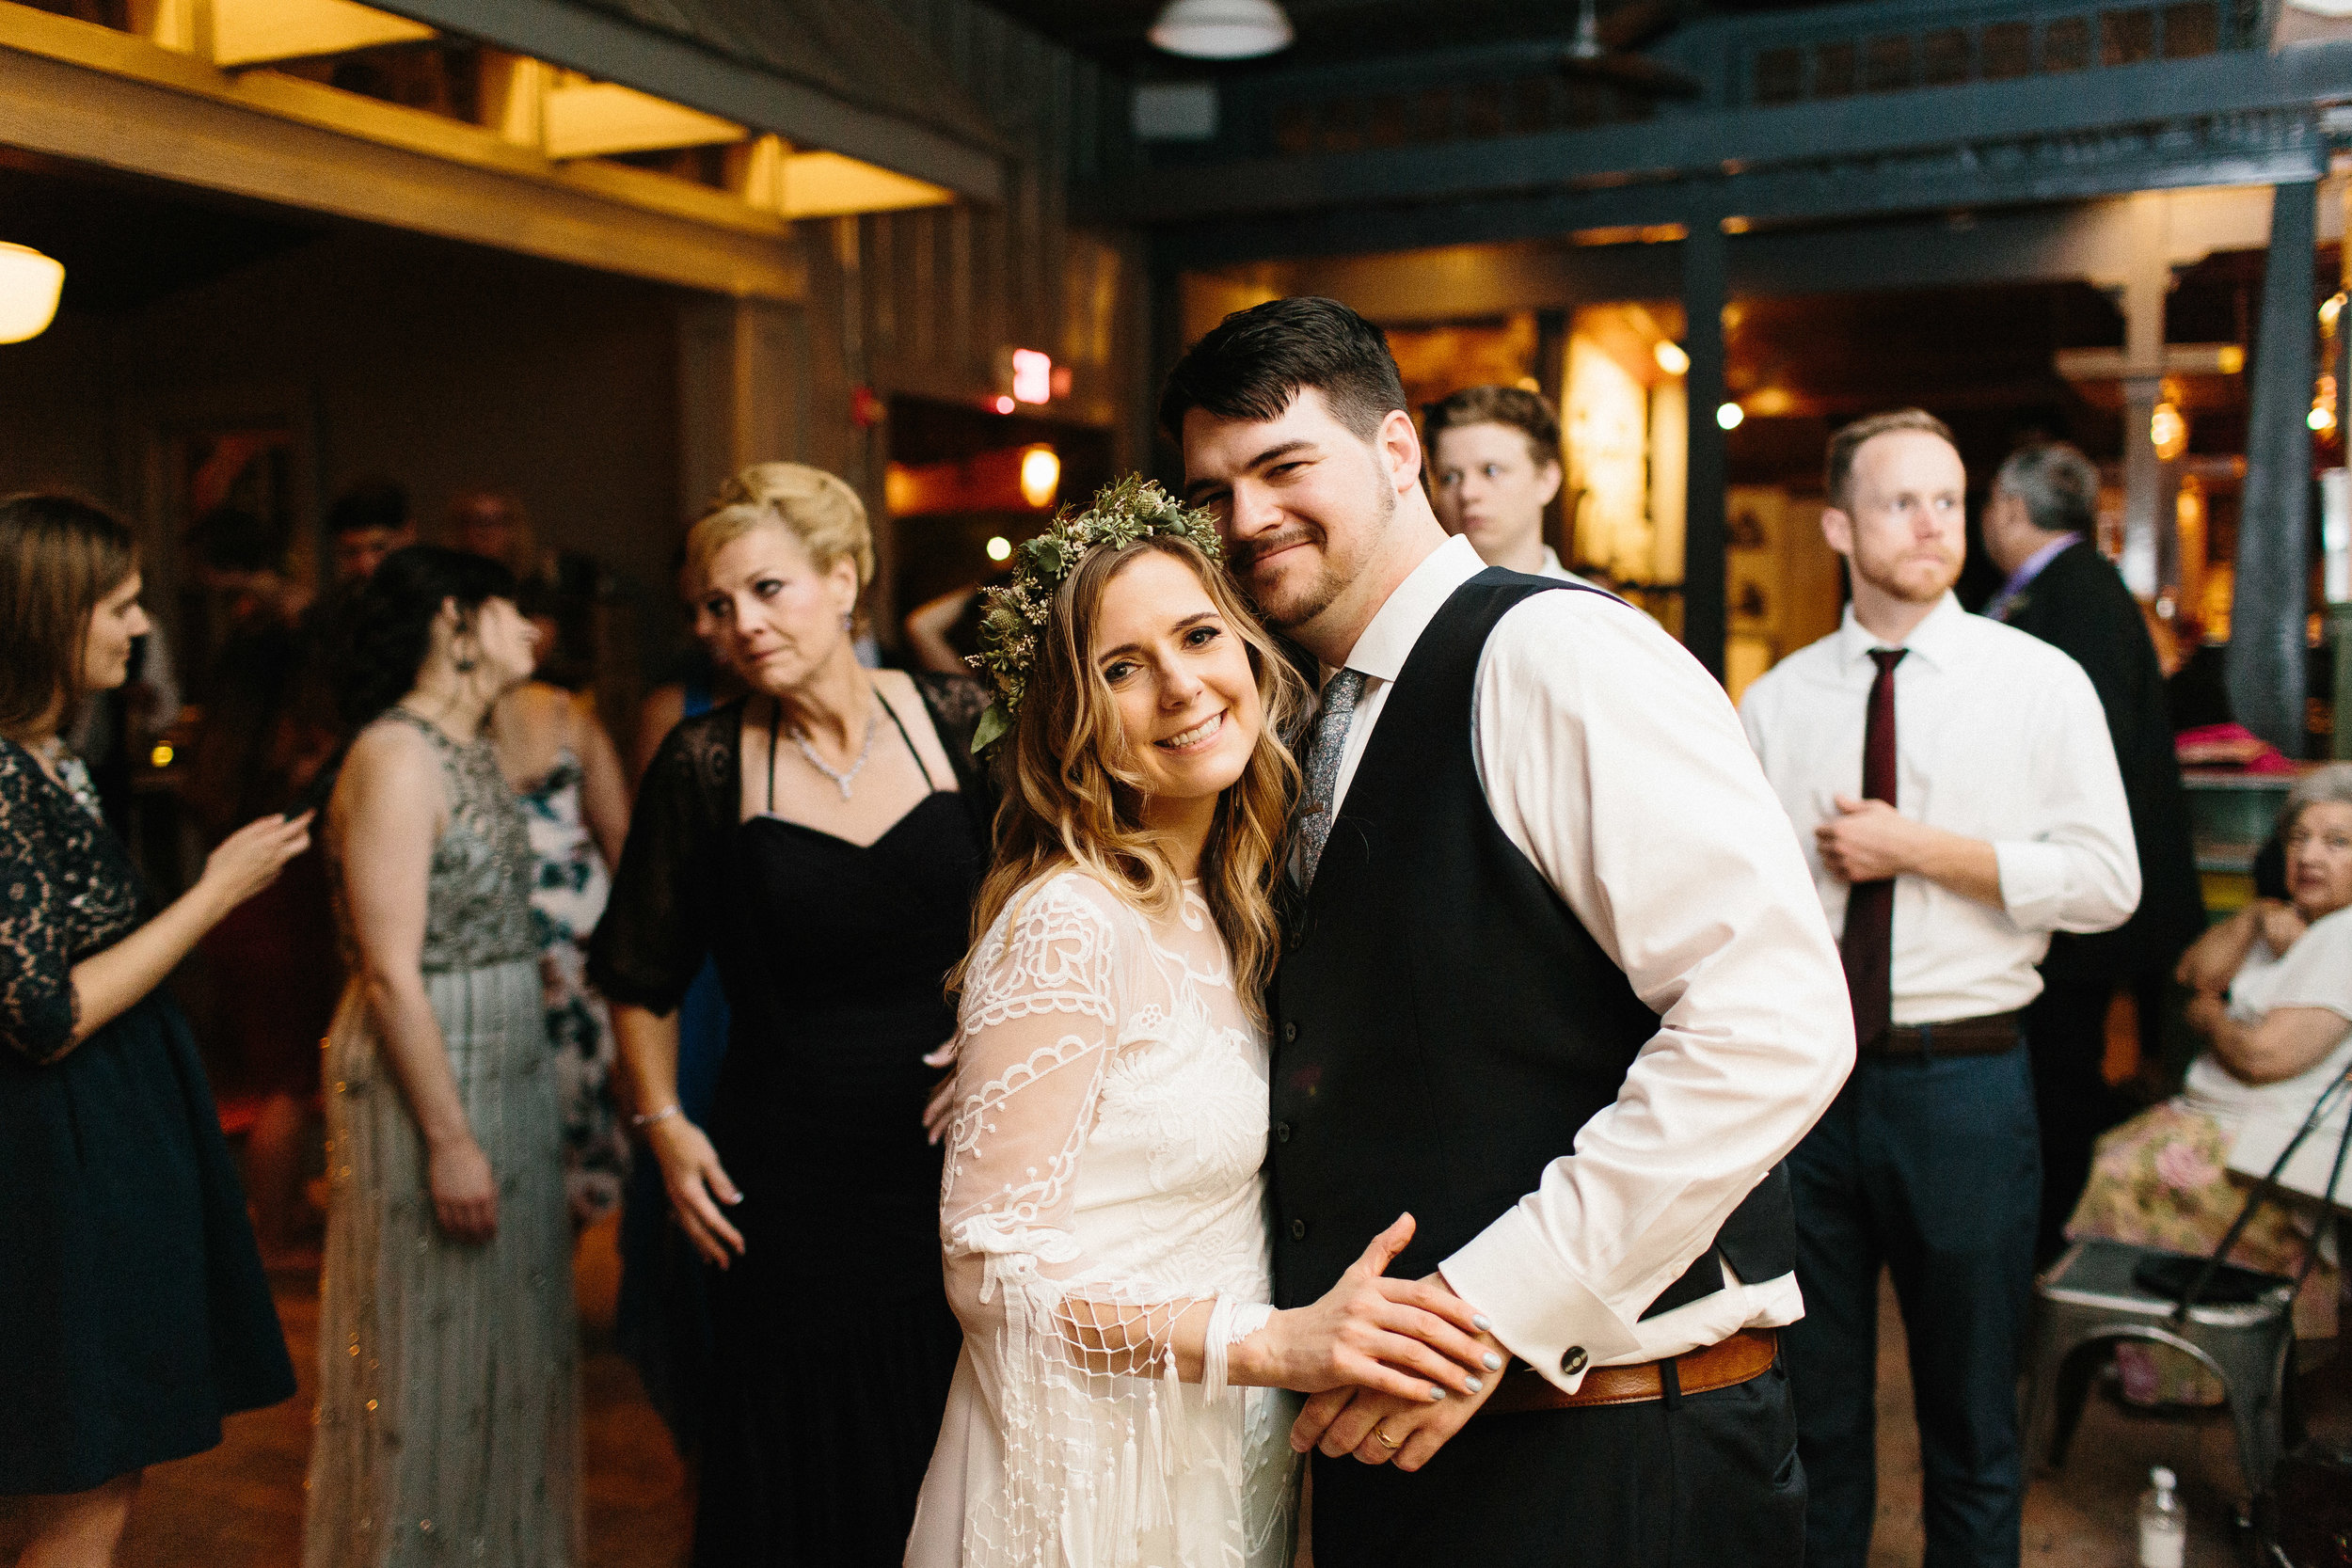 cherry_hollow_farms_industrial_unique_venue_georgia_serenbe_wedding_boho_midsummer_nights_dream_river_west_3400.jpg